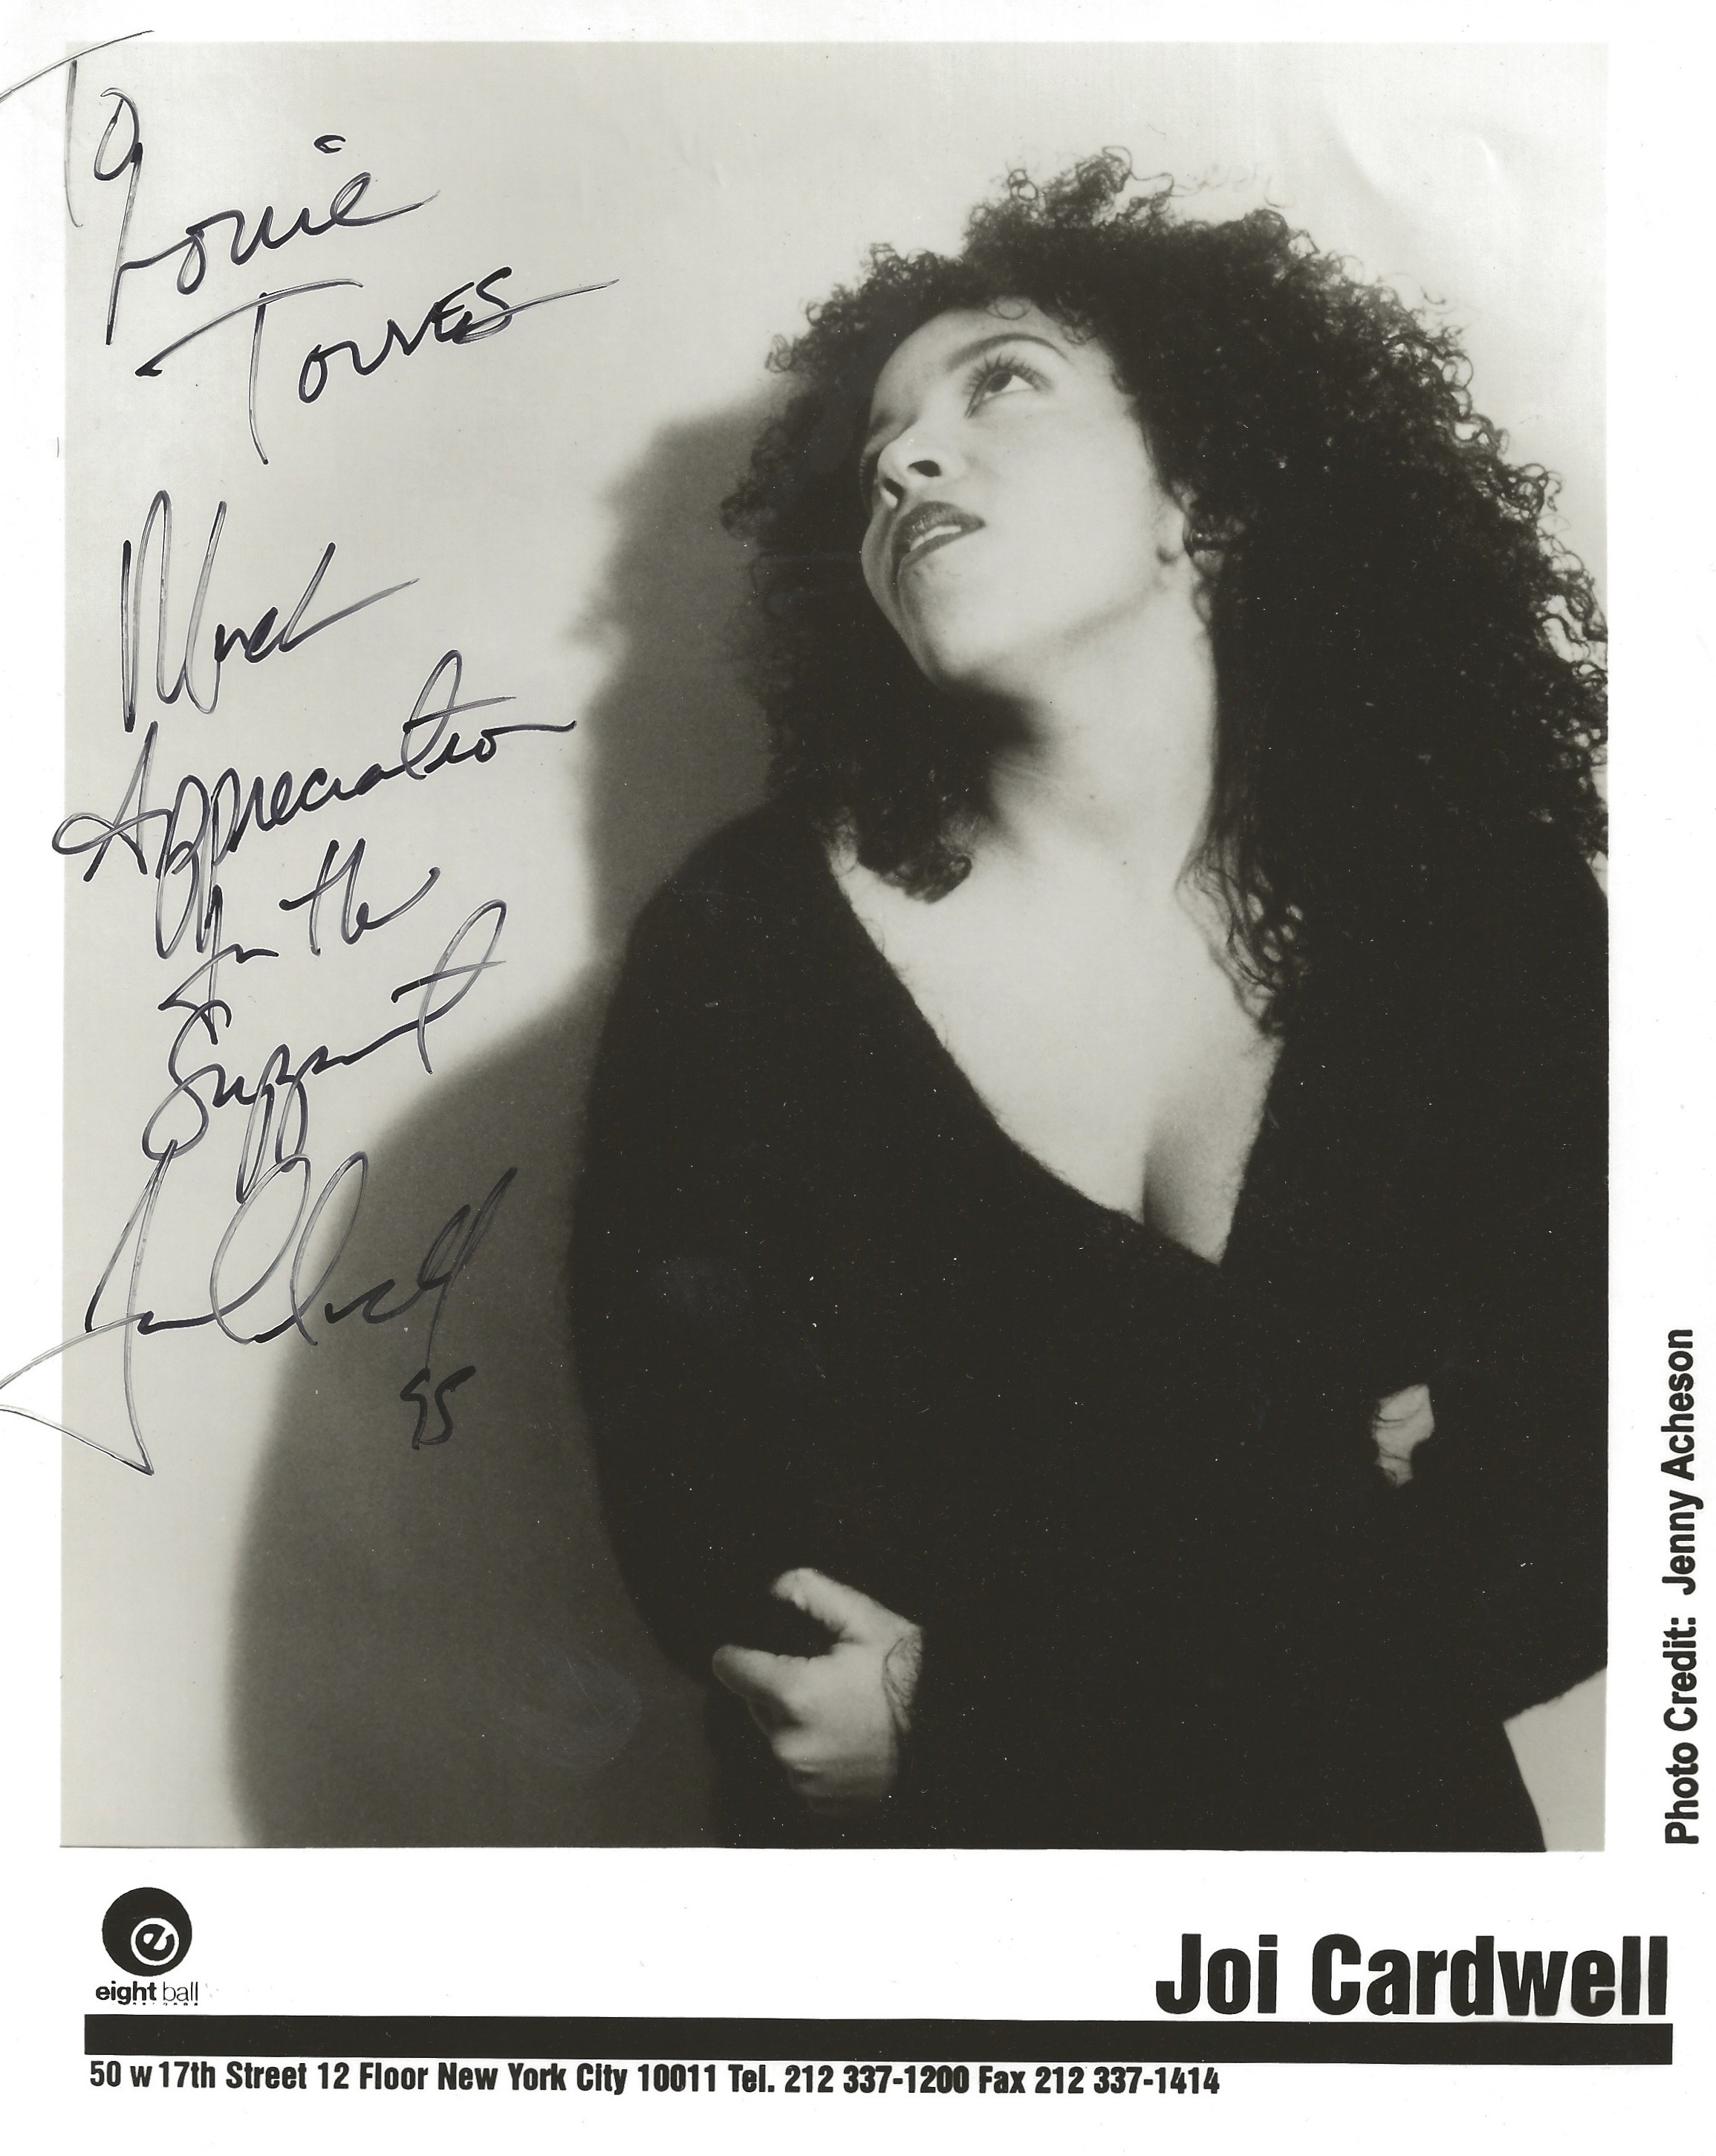 Legendary-House-music-vocalist-Joi-Cardwell-at-a-For-The-Record-meet-and-greet-early-90s